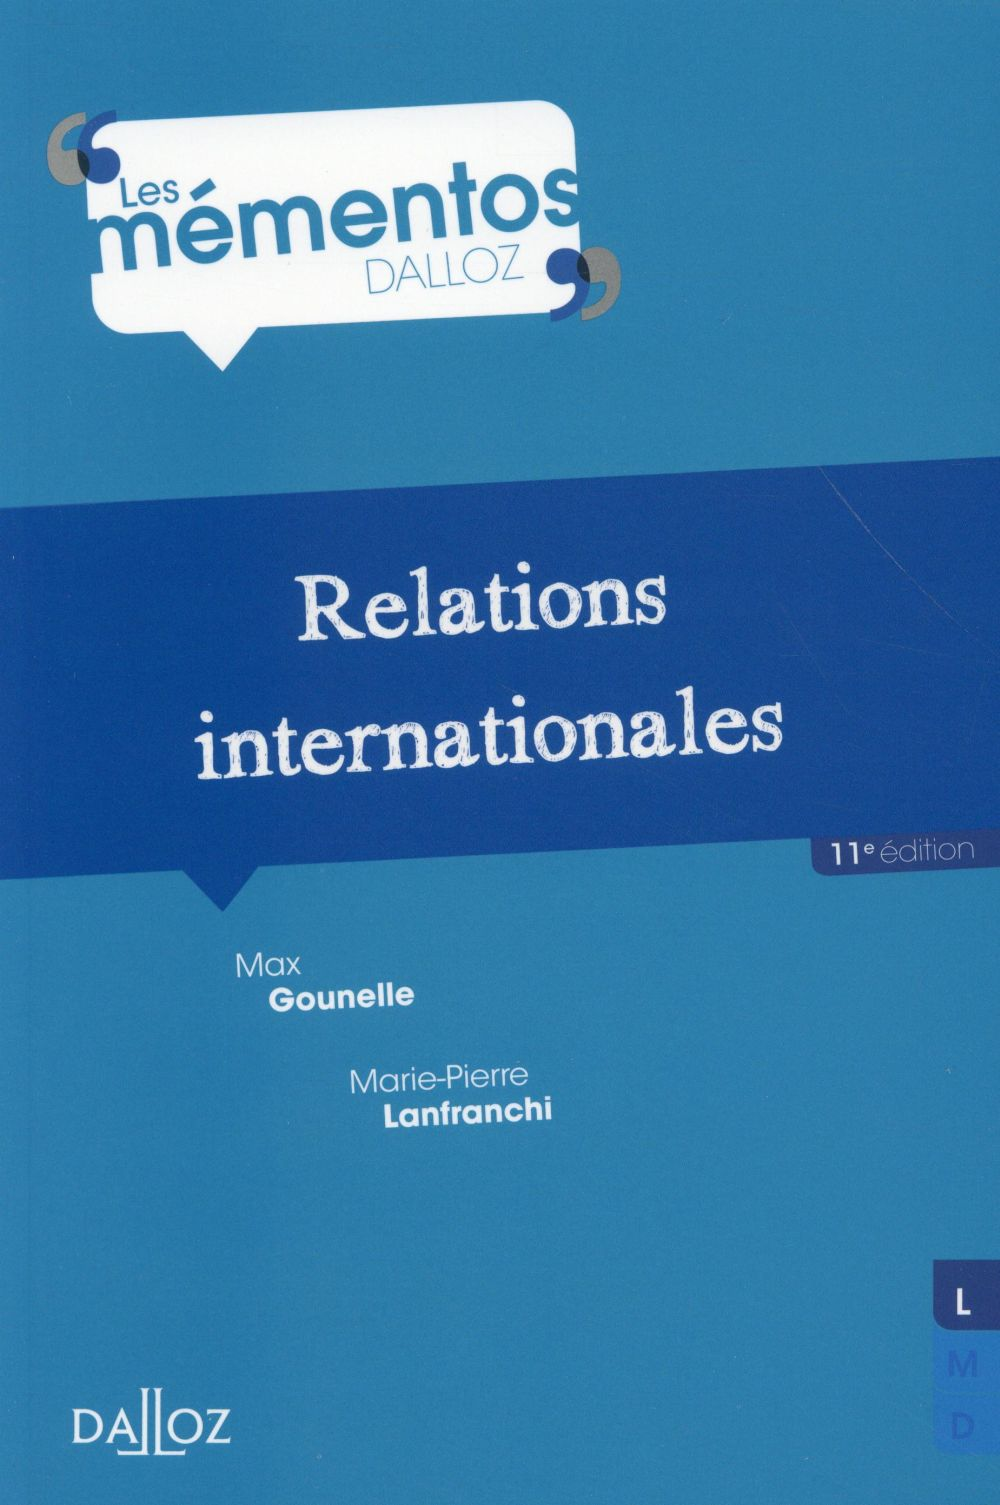 Relations internationales (11e édition)